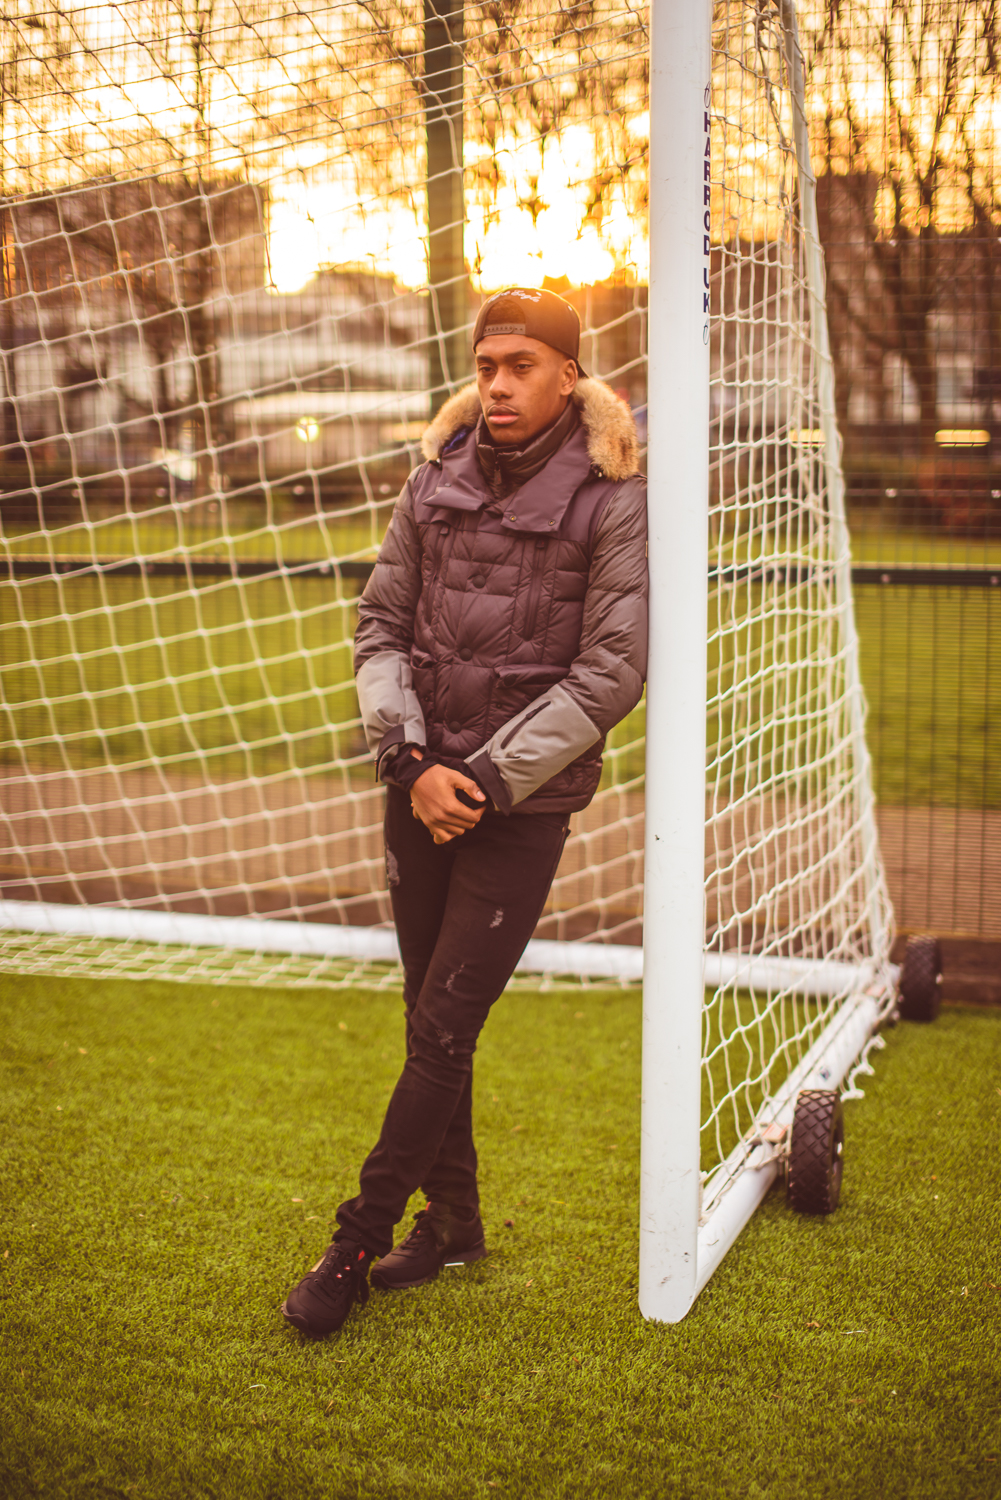 Alex Iwobi full body shot as part of photoshoot